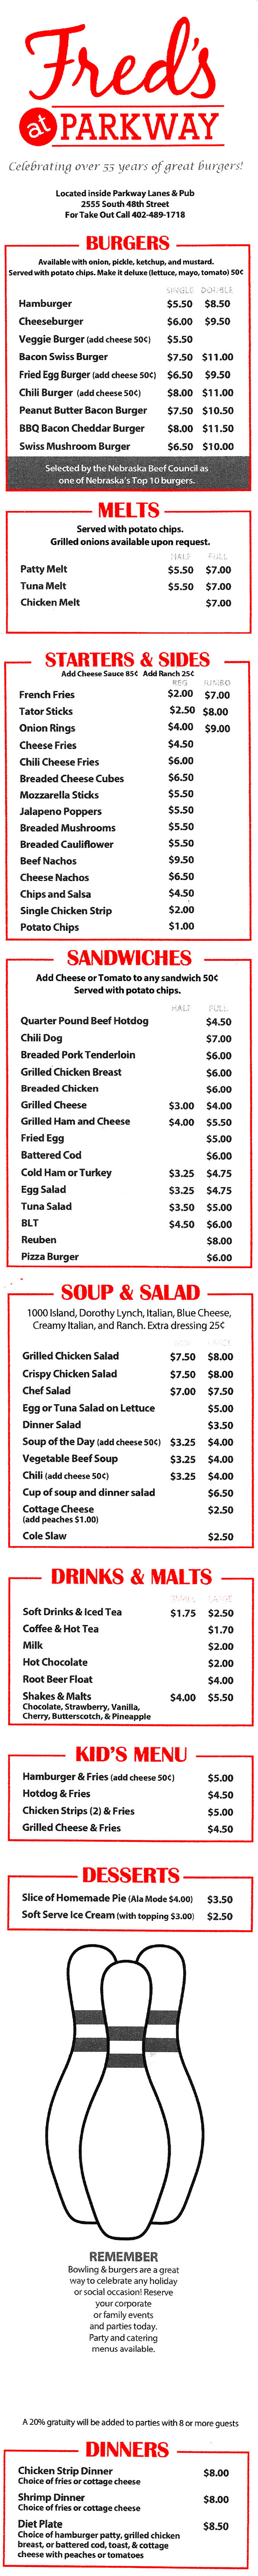 fred u0027s at parkway menu with prices 2555 s 48th st lincoln ne